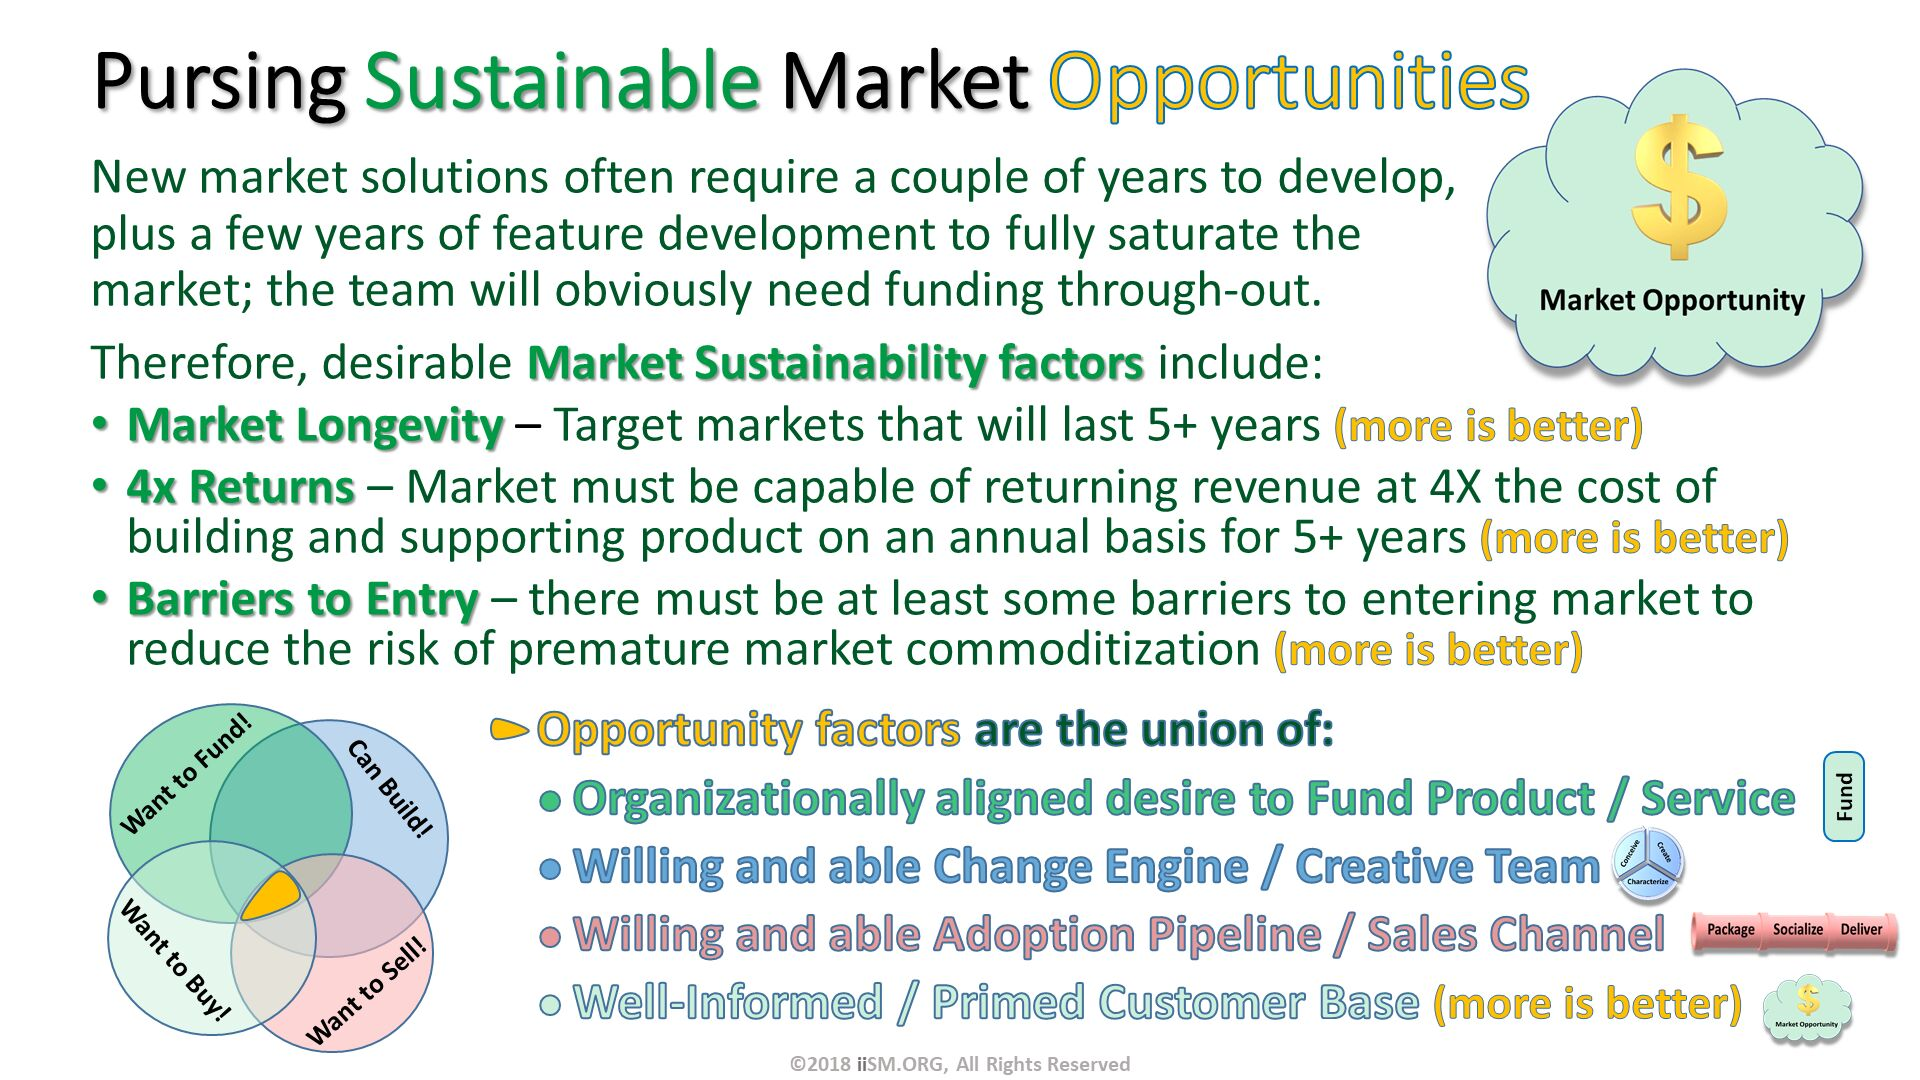 Therefore, desirable Market Sustainability factors include: Market Longevity – Target markets that will last 5+ years (more is better) 4x Returns – Market must be capable of returning revenue at 4X the cost of building and supporting product on an annual basis for 5+ years (more is better) Barriers to Entry – there must be at least some barriers to entering market to reduce the risk of premature market commoditization (more is better) . Pursing Sustainable Market Opportunities. New market solutions often require a couple of years to develop, plus a few years of feature development to fully saturate the market; the team will obviously need funding through-out. . ©2018 iiSM.ORG, All Rights Reserved. Fund.